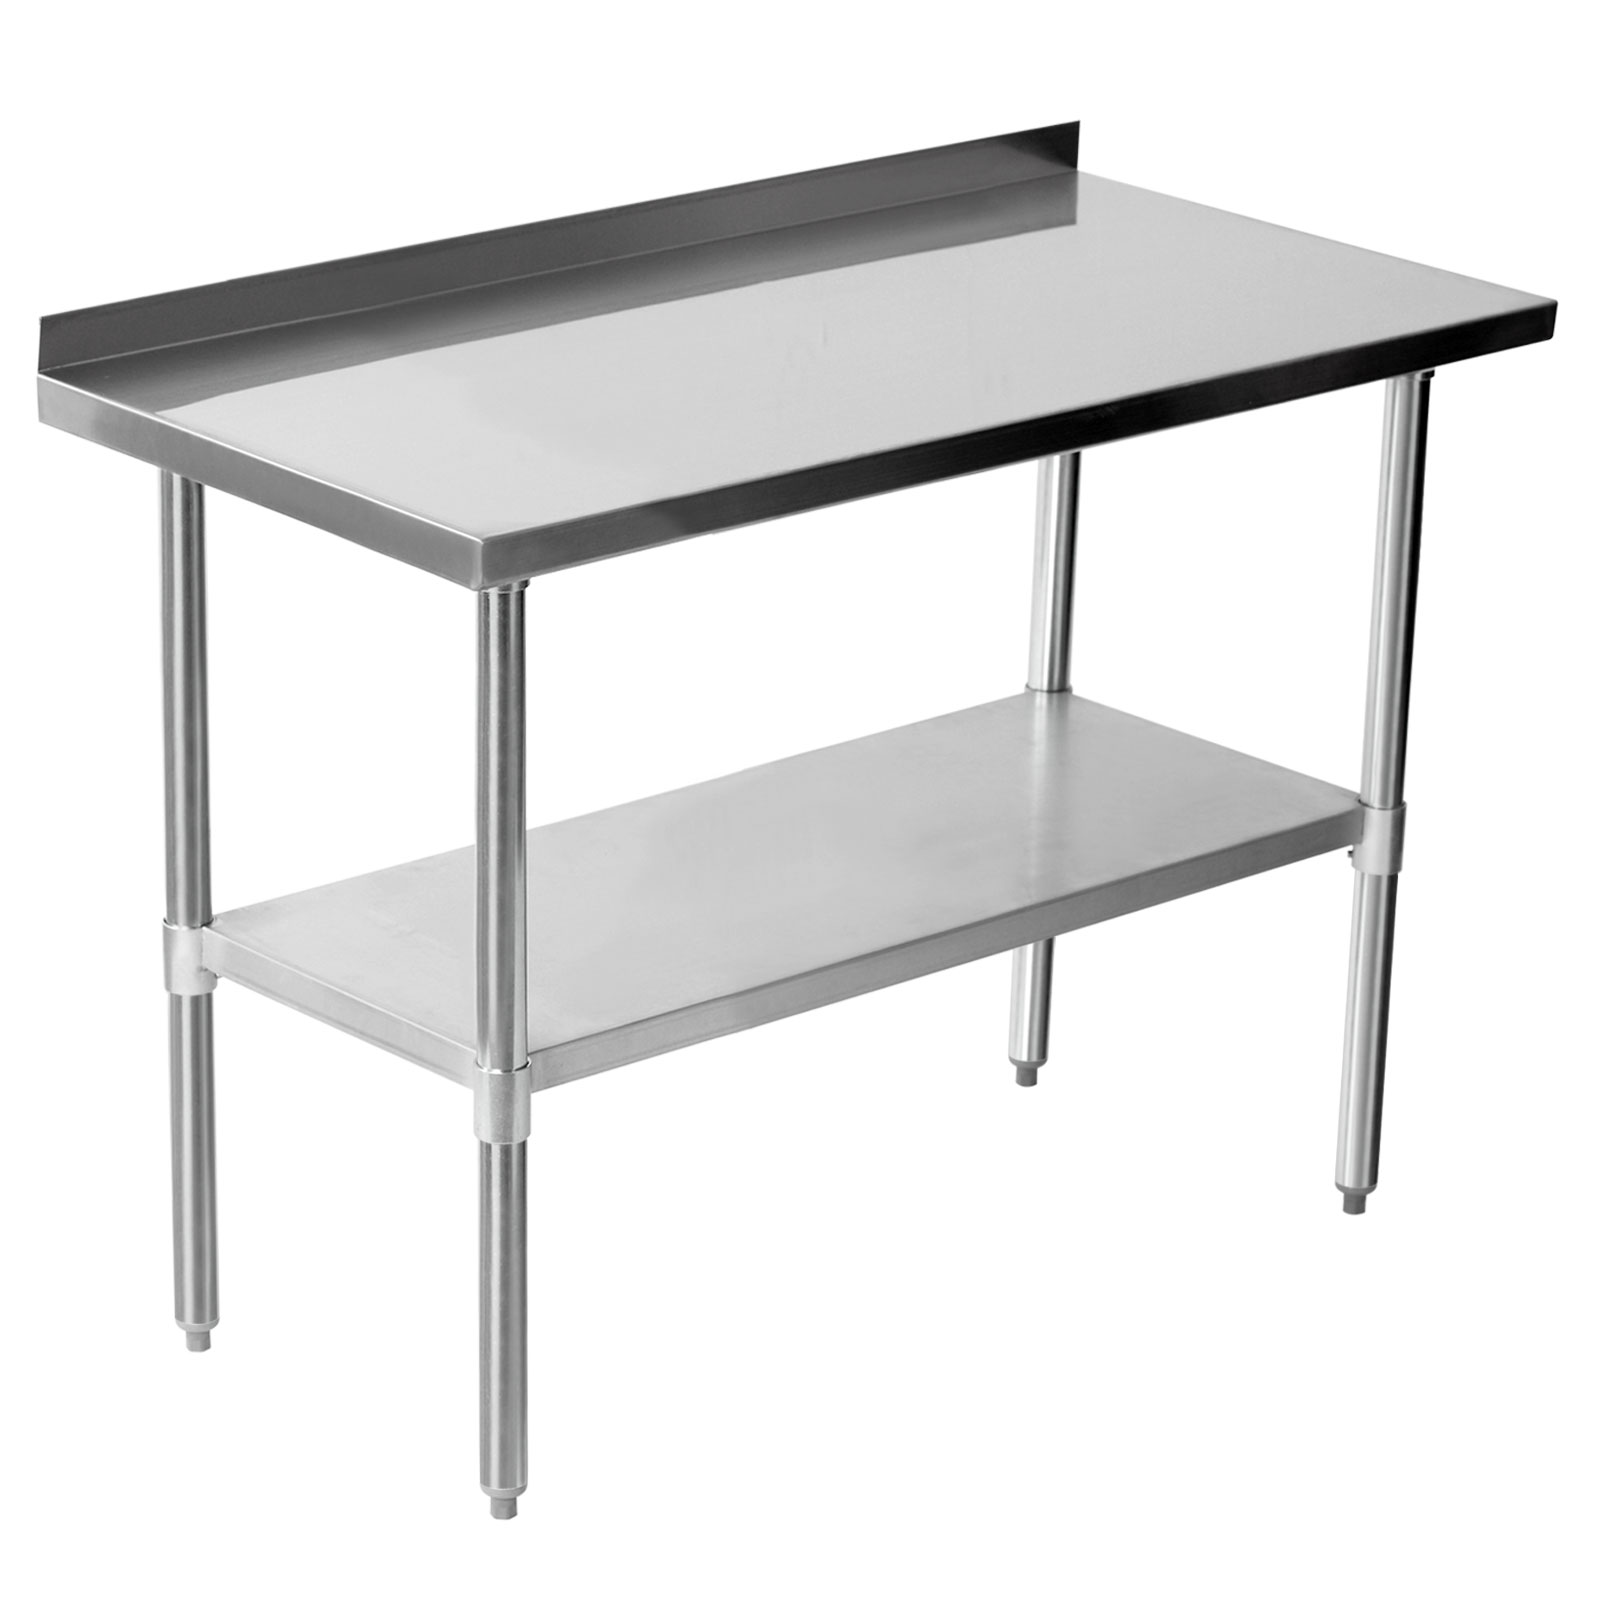 Work Benches With Storage | Metal Workbench | Standing Work Bench